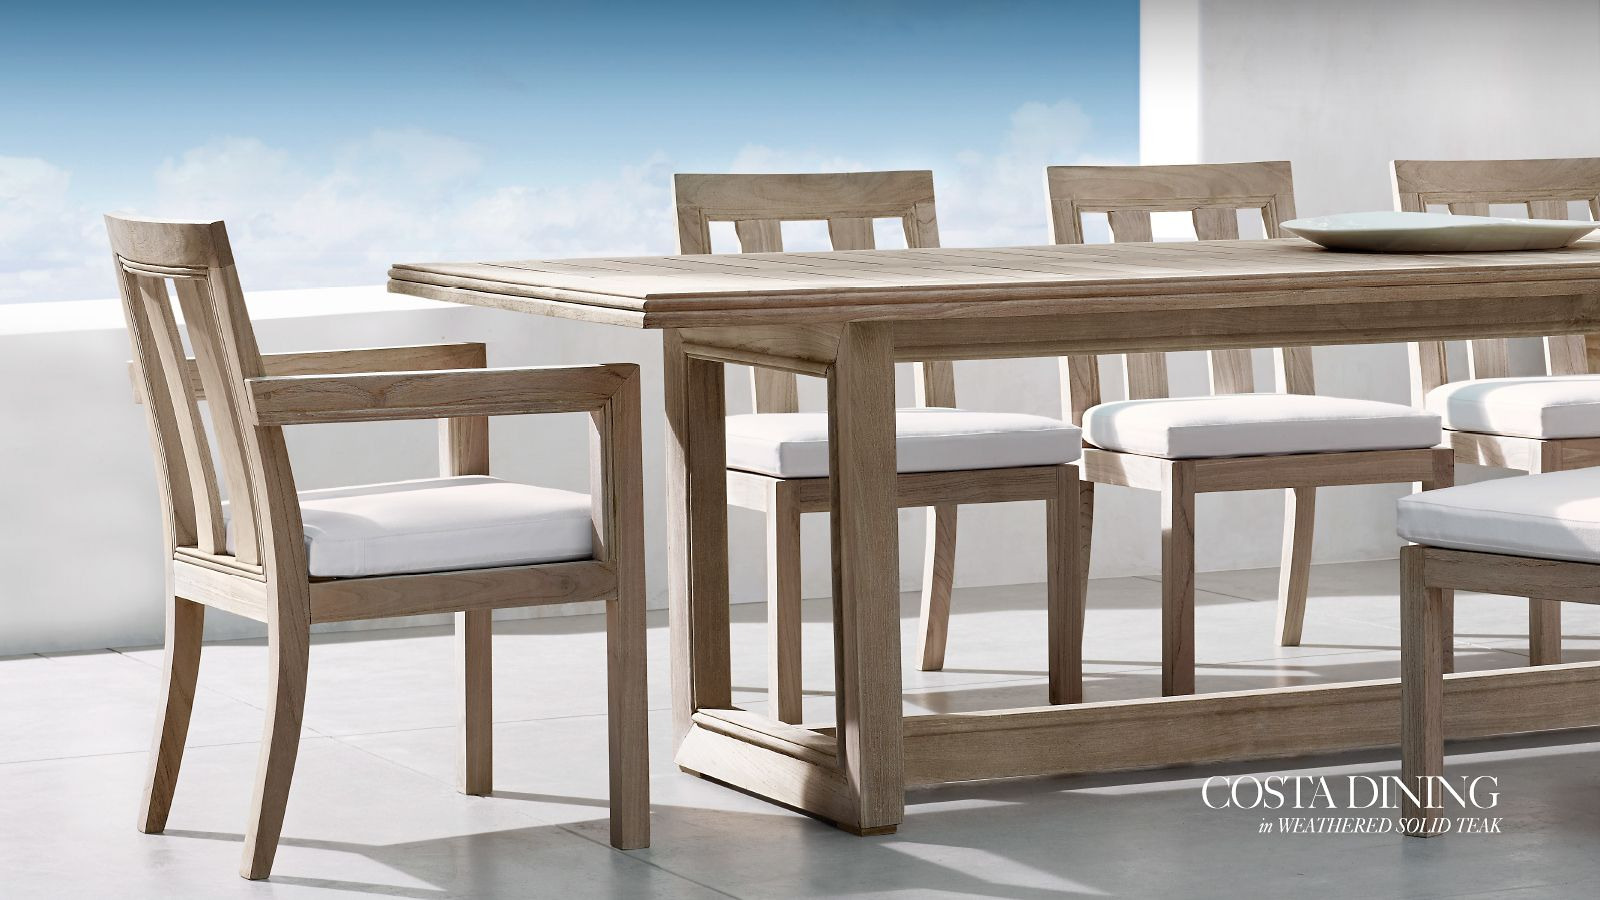 archives outdoor furniture concept patio bradenton source fl dining the from beautiful benestuff build cupboard best vases bakken design hardware restoration